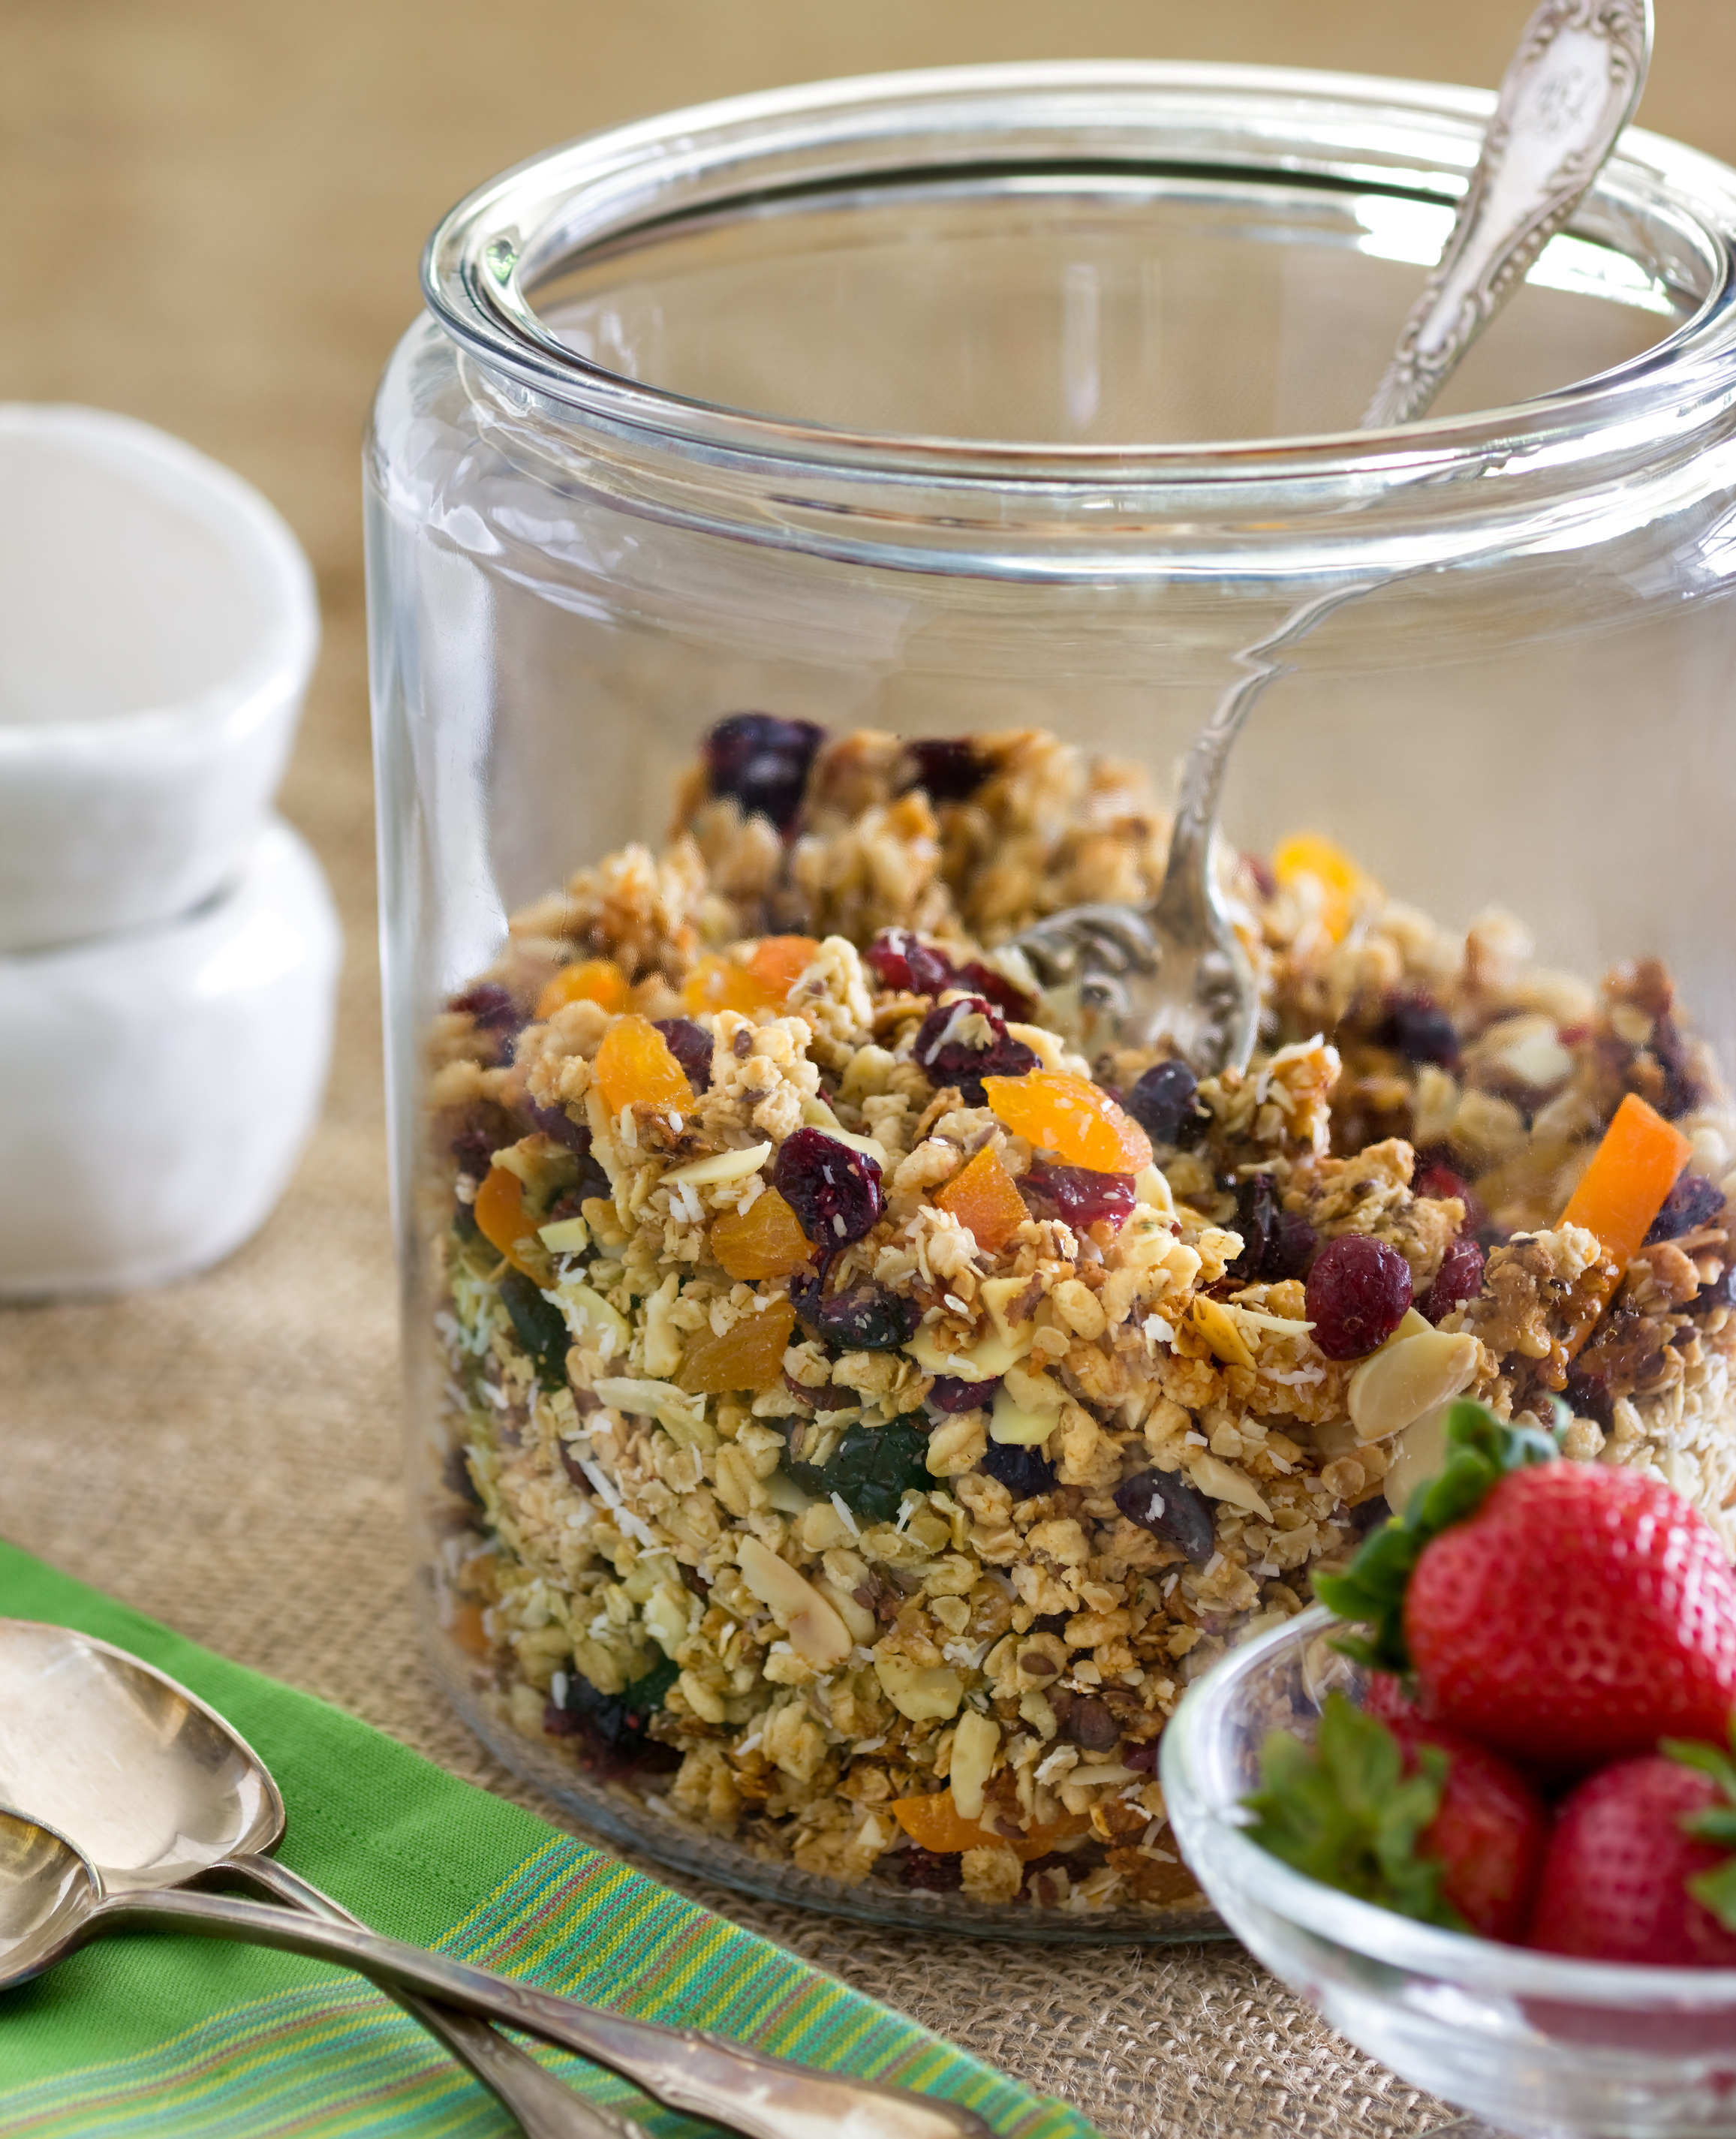 This granola recipe is perfect for early mornings on yogurt or with your milk of choice.